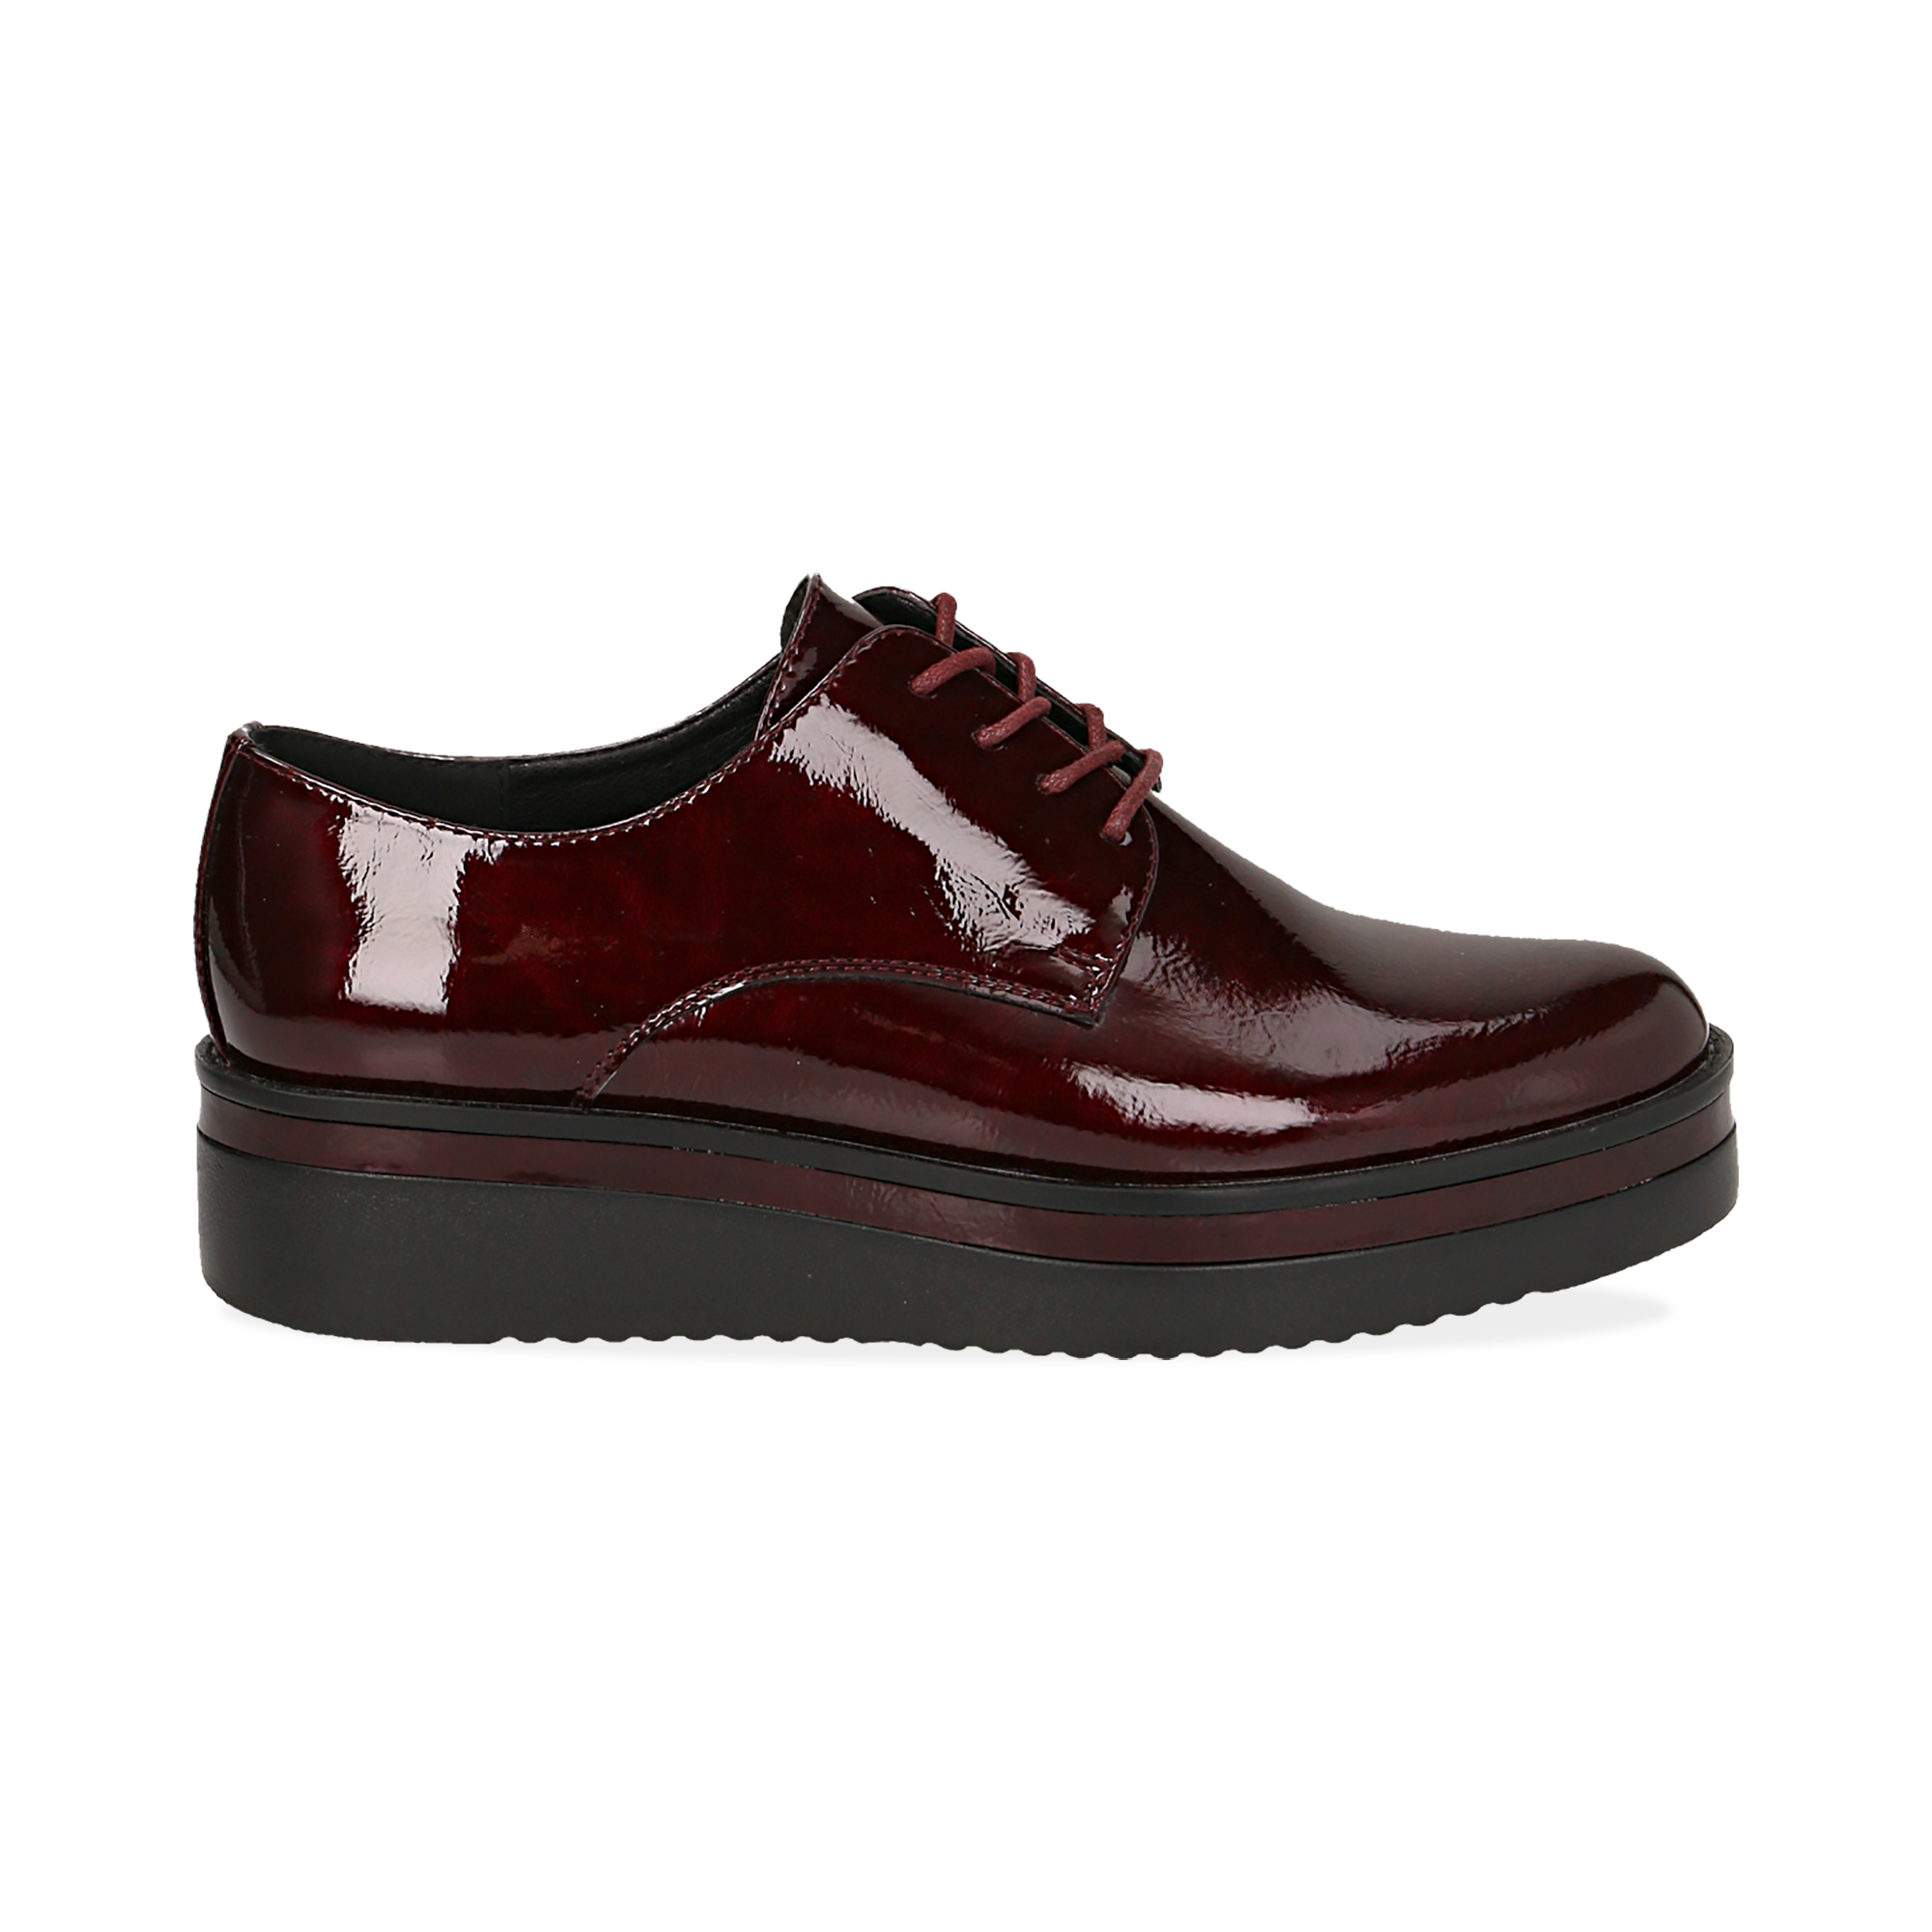 Stringate bordeaux in vernice, zeppa 4 cm